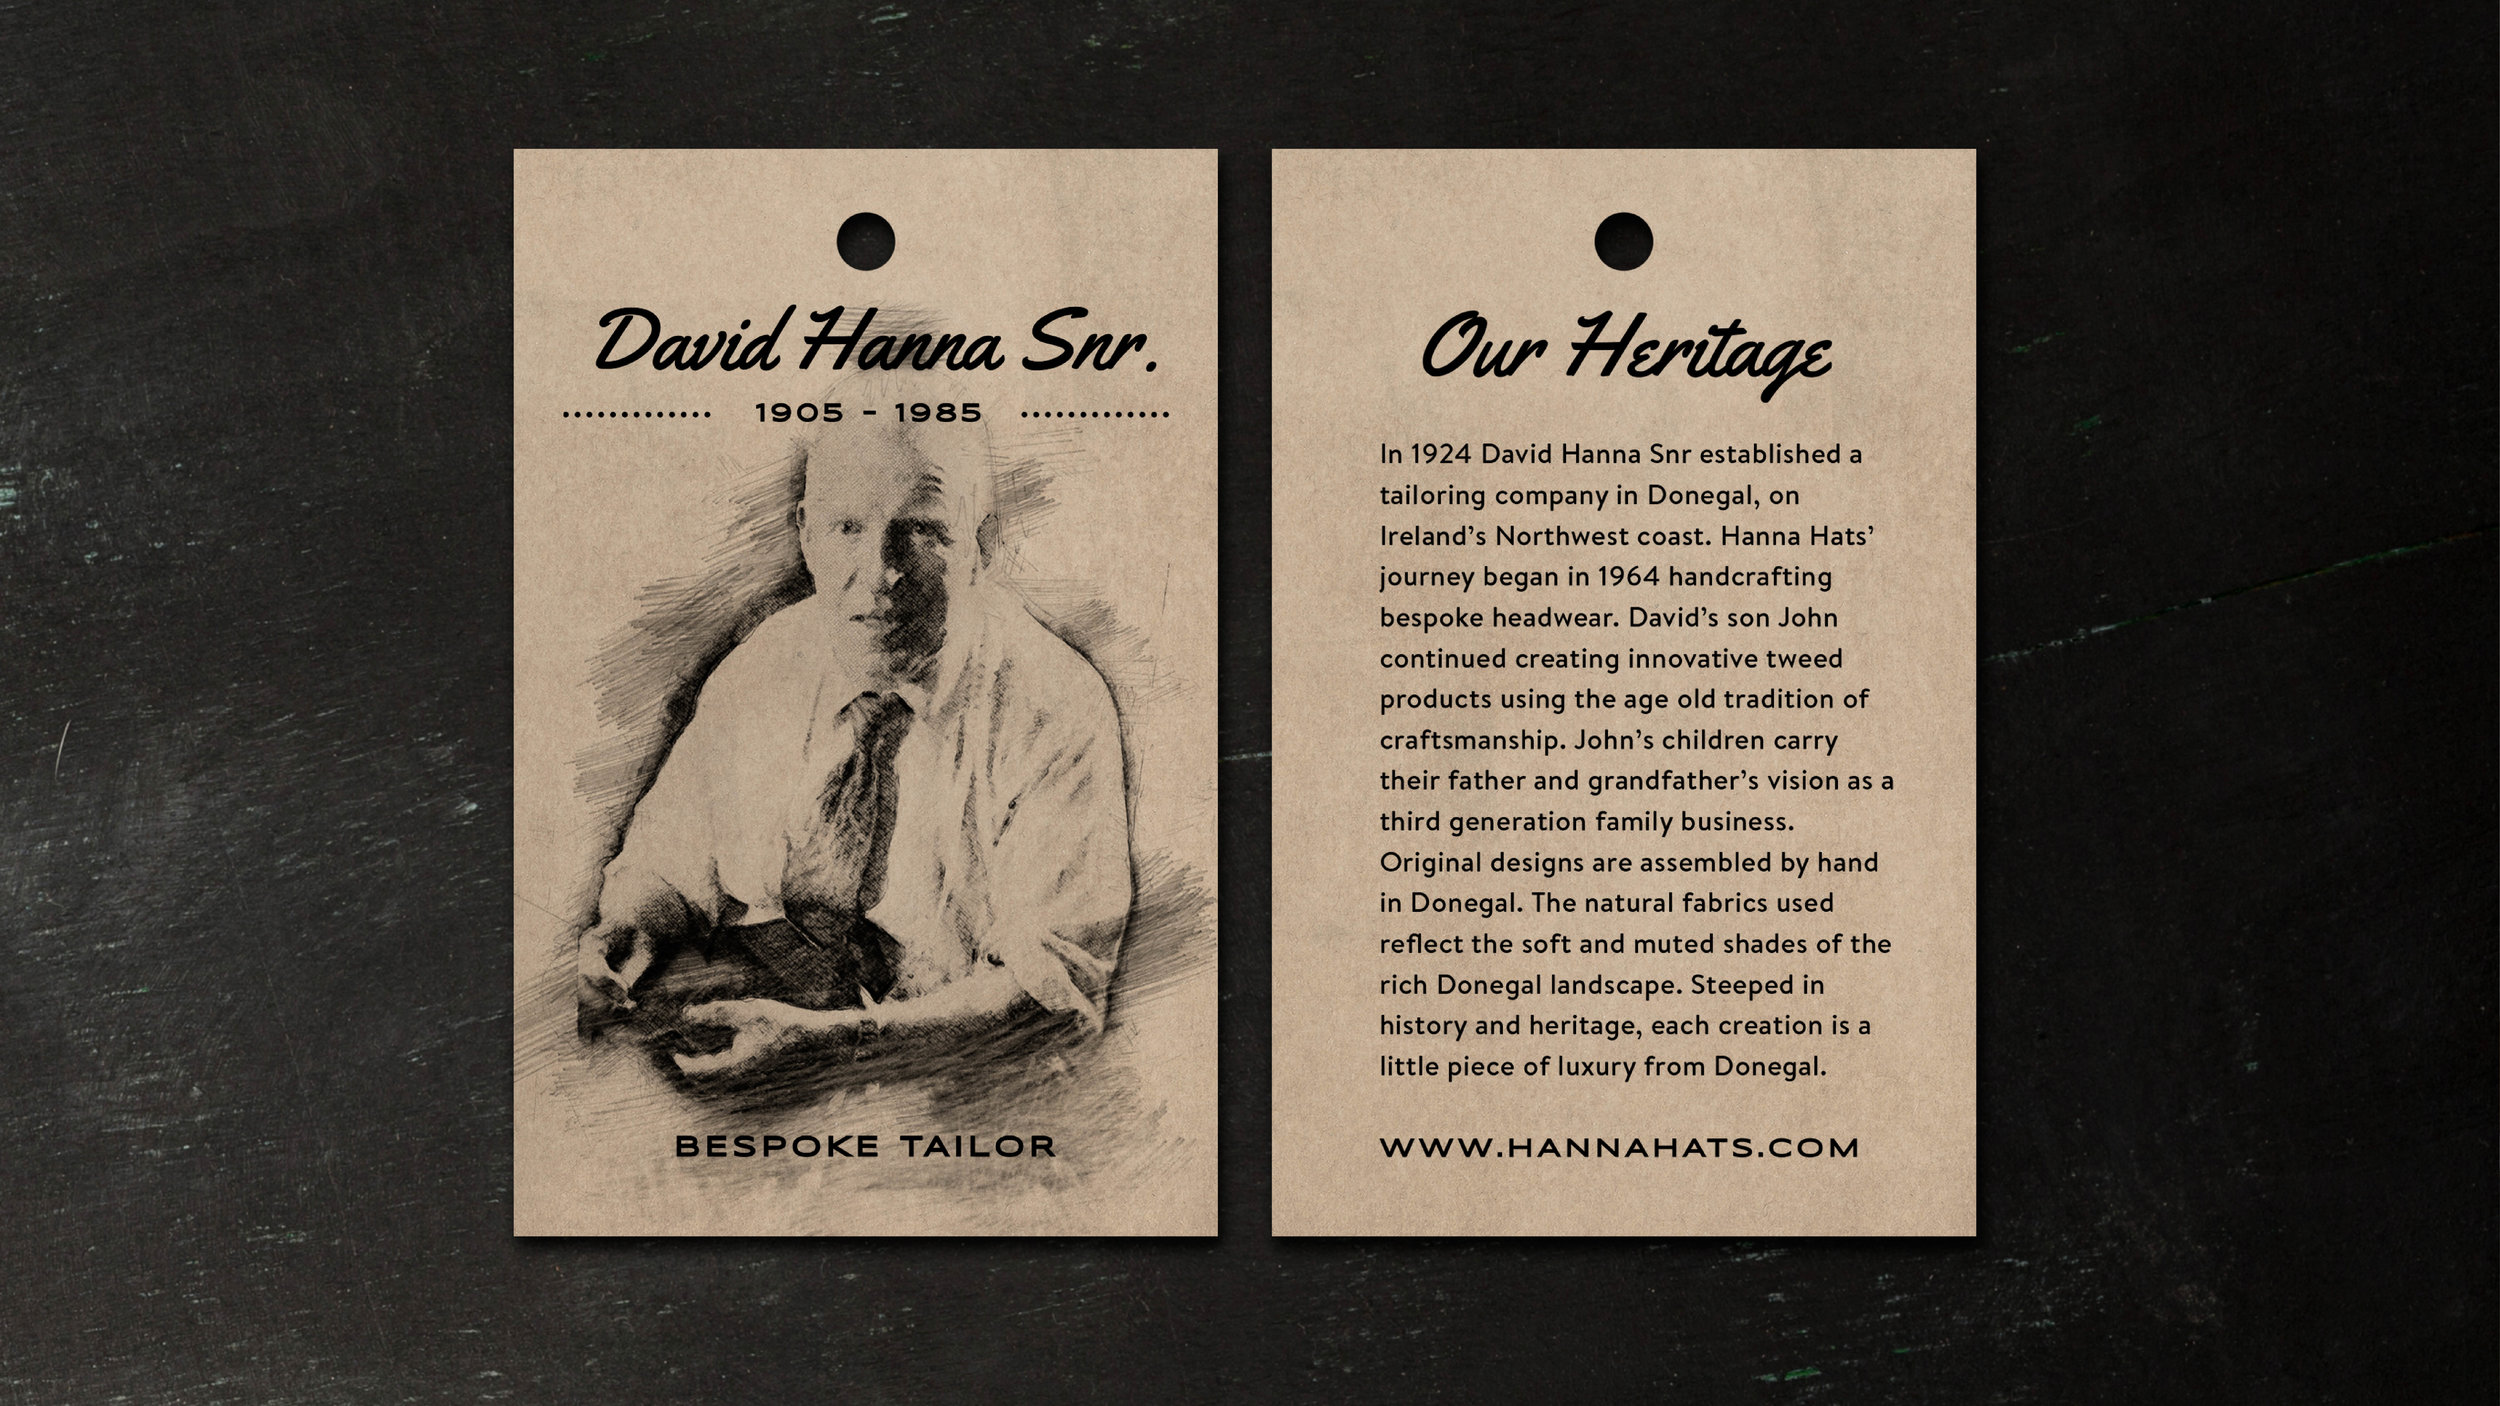 And Finally, we redesigned the heritage label featuring David Hanna Snr. Including this, along with the other swing tag adds a sense of the genuine heritage of the company